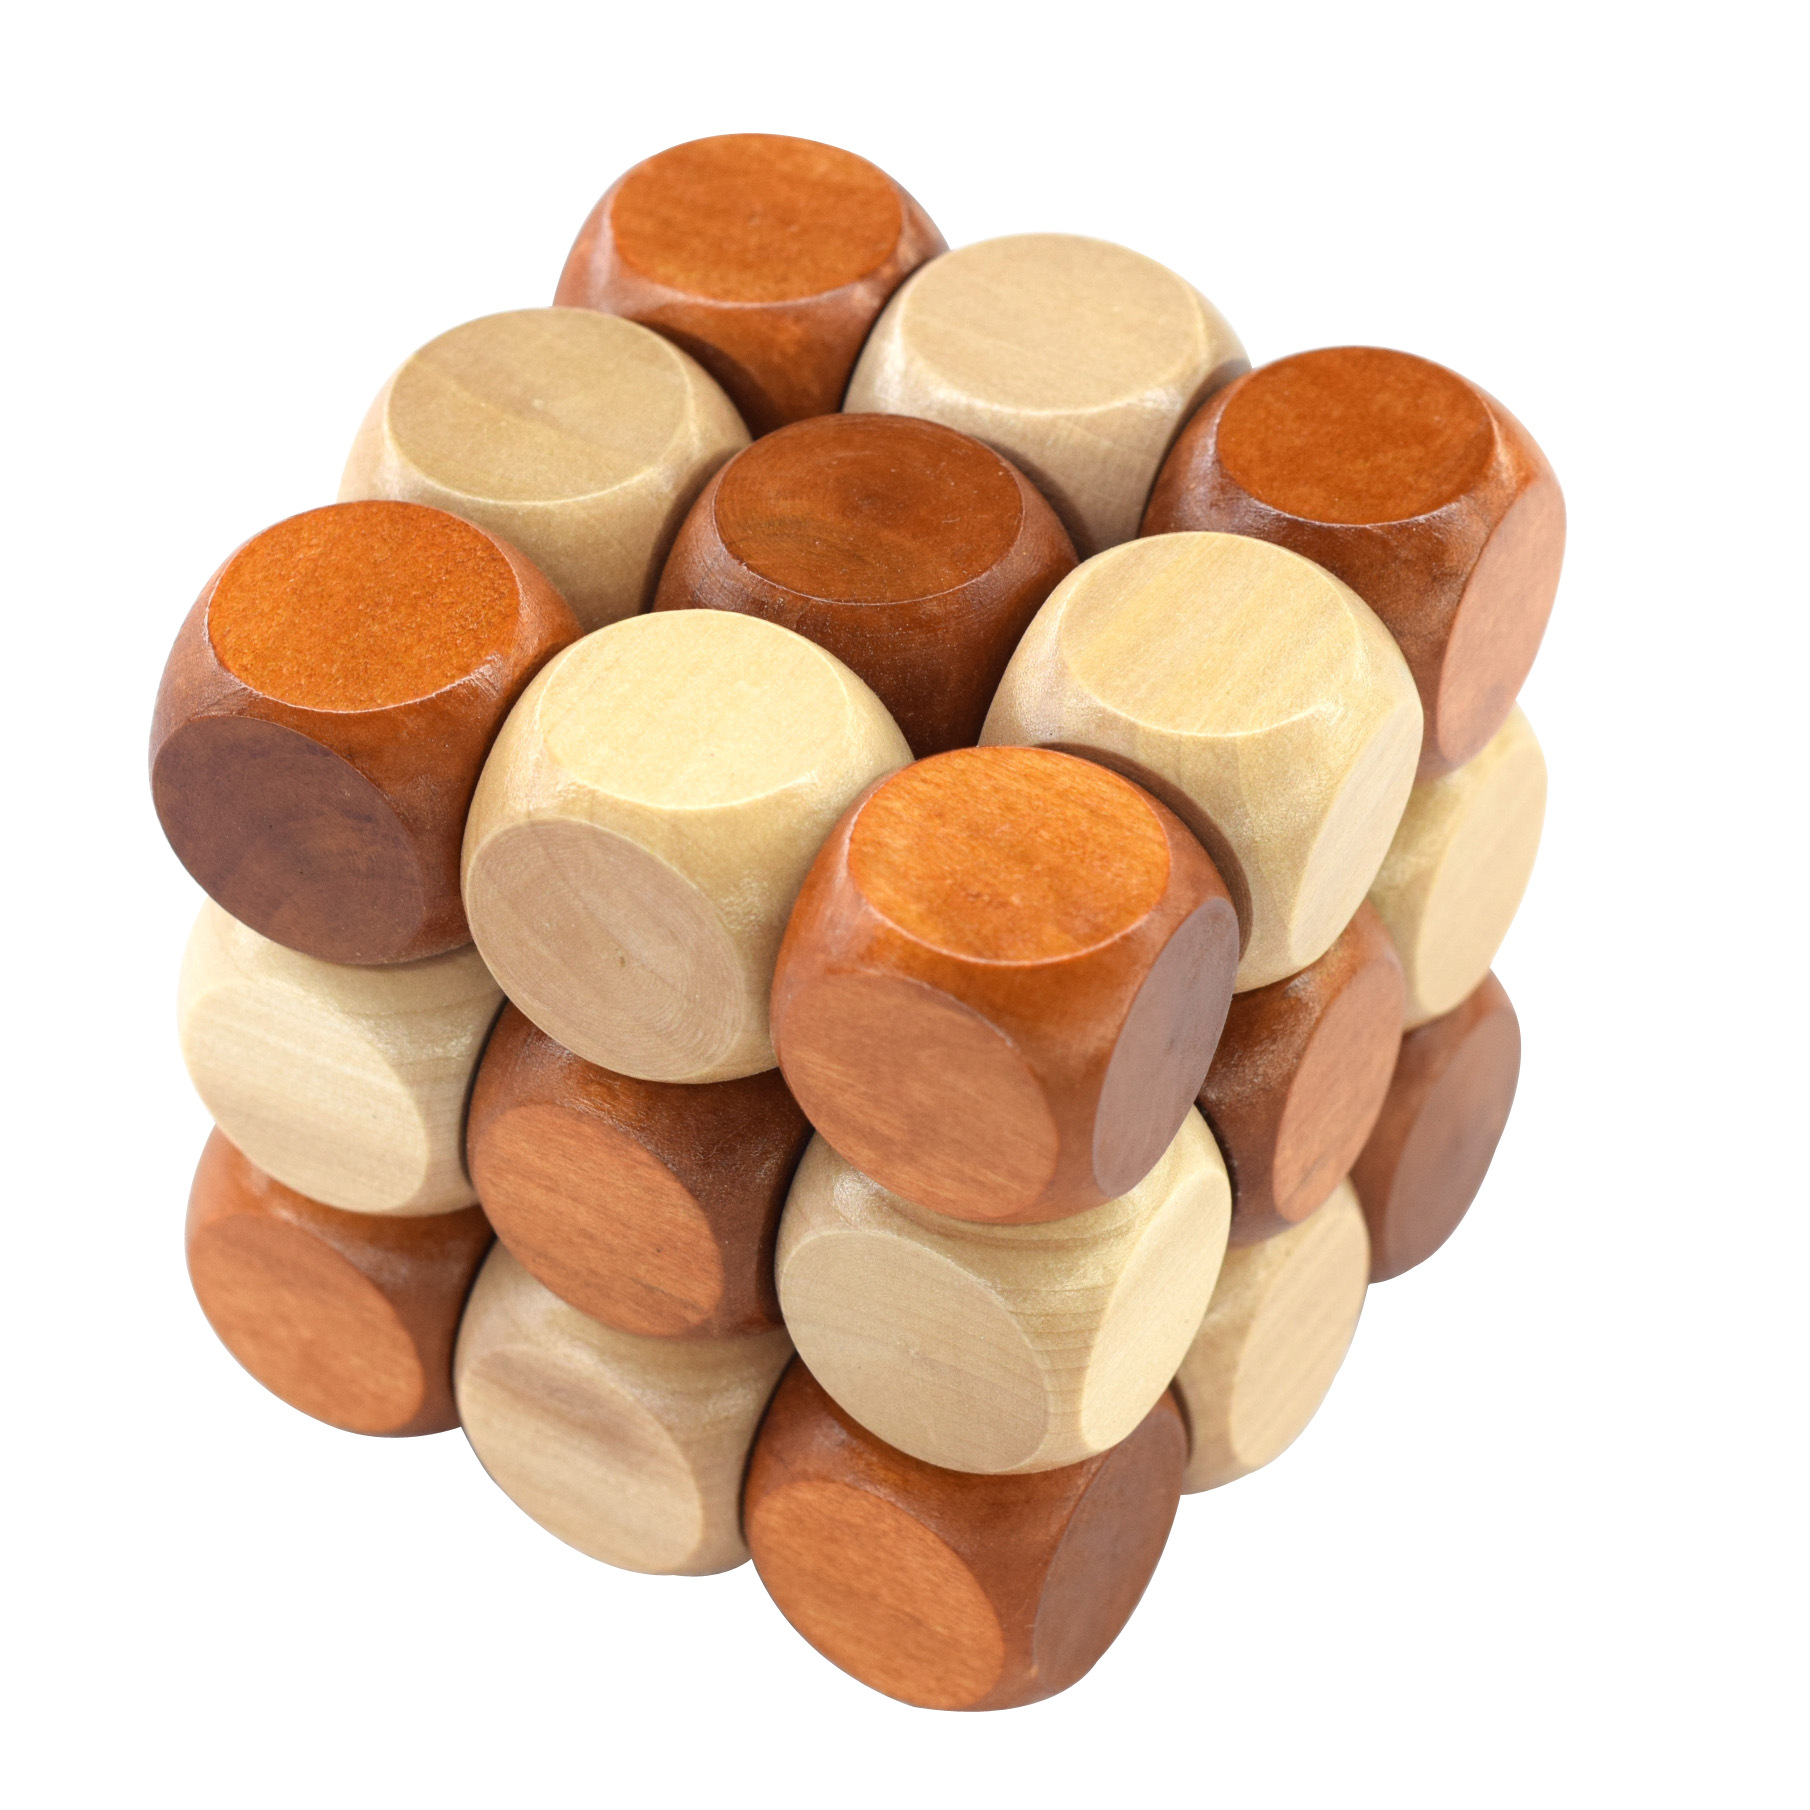 3D Wooden Puzzle Novelty Toys Magic Cube Educational Brain Teaser IQ Mind Game For Children Adult Snake Shape metal puzzle iq mind brain game teaser square educational toy gift for children adult kid game toy